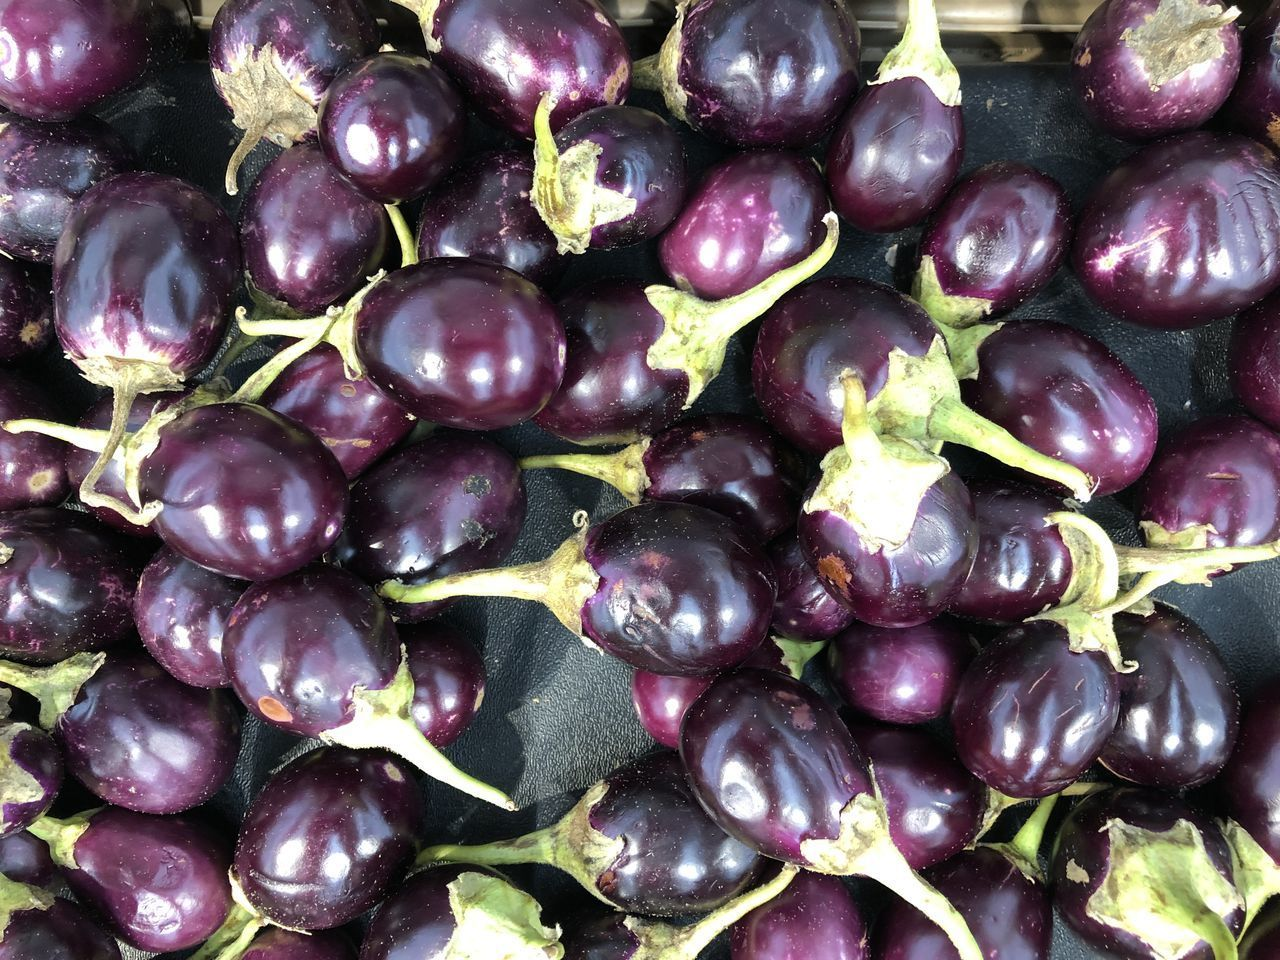 food and drink, food, healthy eating, full frame, wellbeing, freshness, backgrounds, large group of objects, abundance, purple, close-up, fruit, vegetable, no people, still life, market, eggplant, day, for sale, retail, ripe